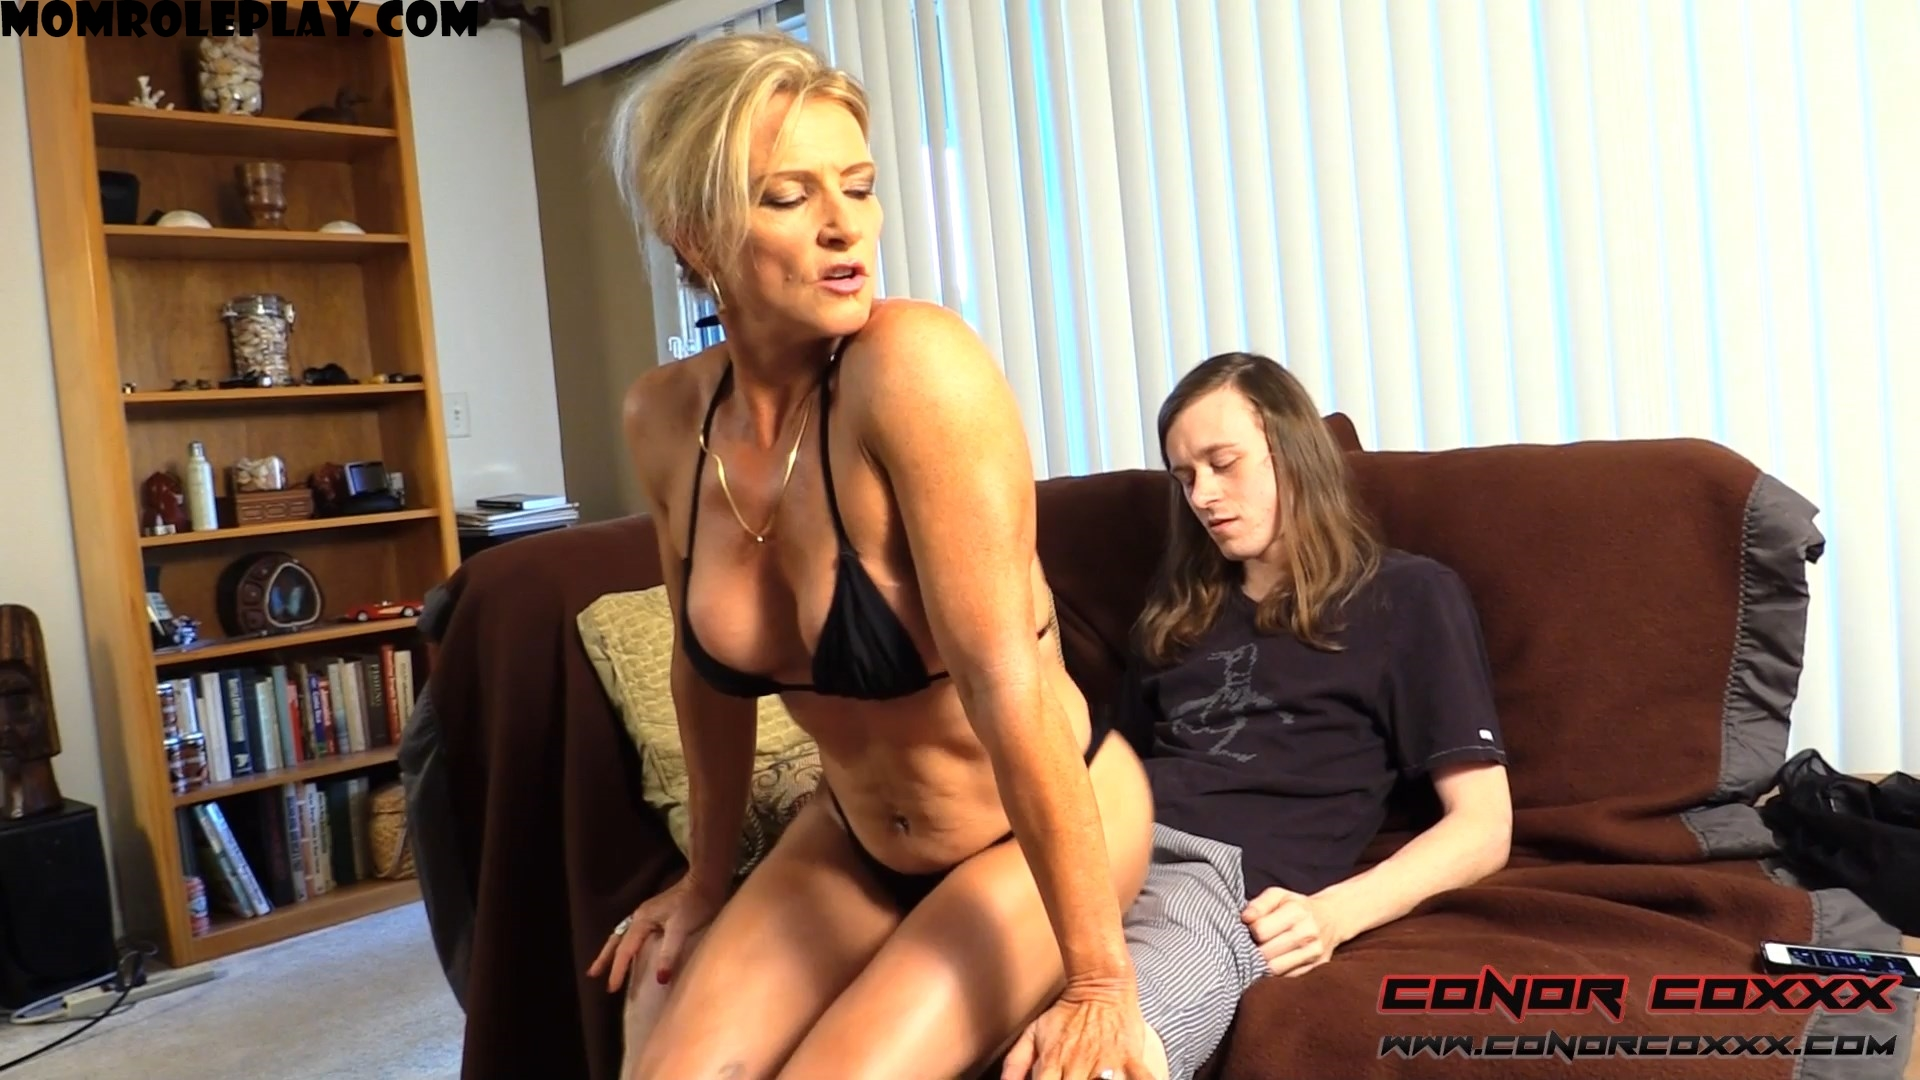 Conor Coxxx Clips - Son Fun In Mum's Bum - Amanda Verhooks - FullHD 1080p